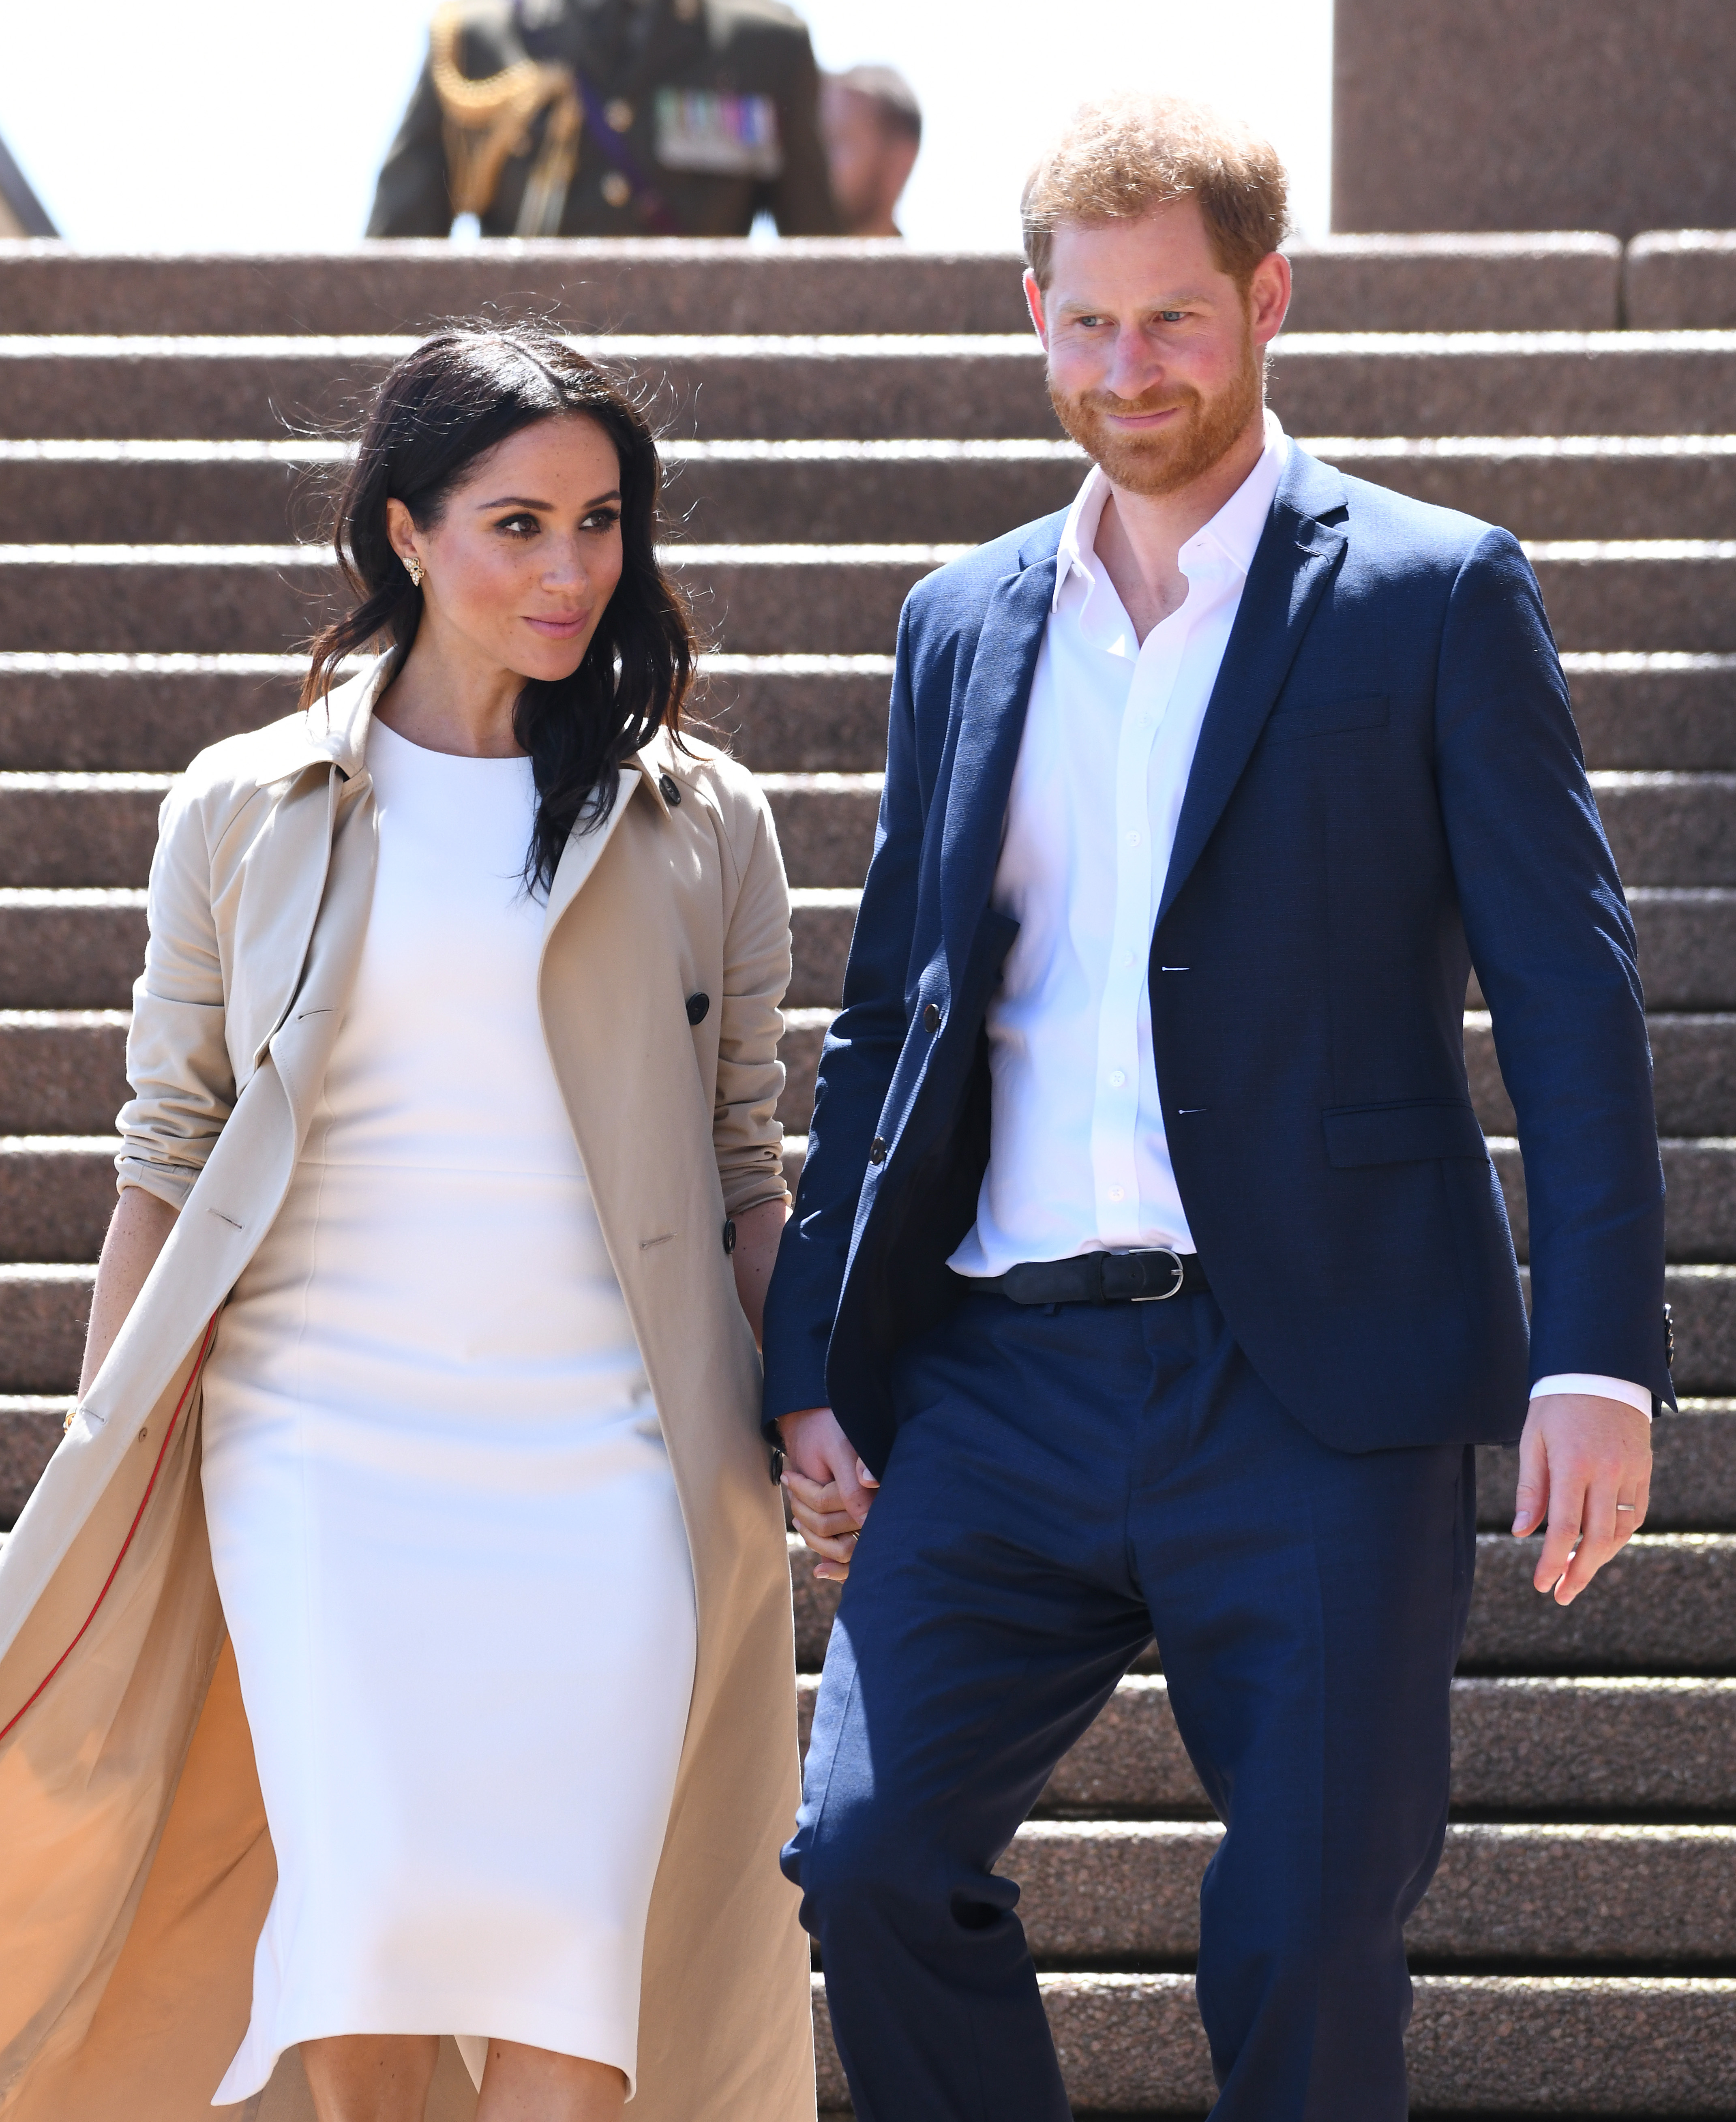 #RoyalBaby: Harry and Meghan's long list of baby names